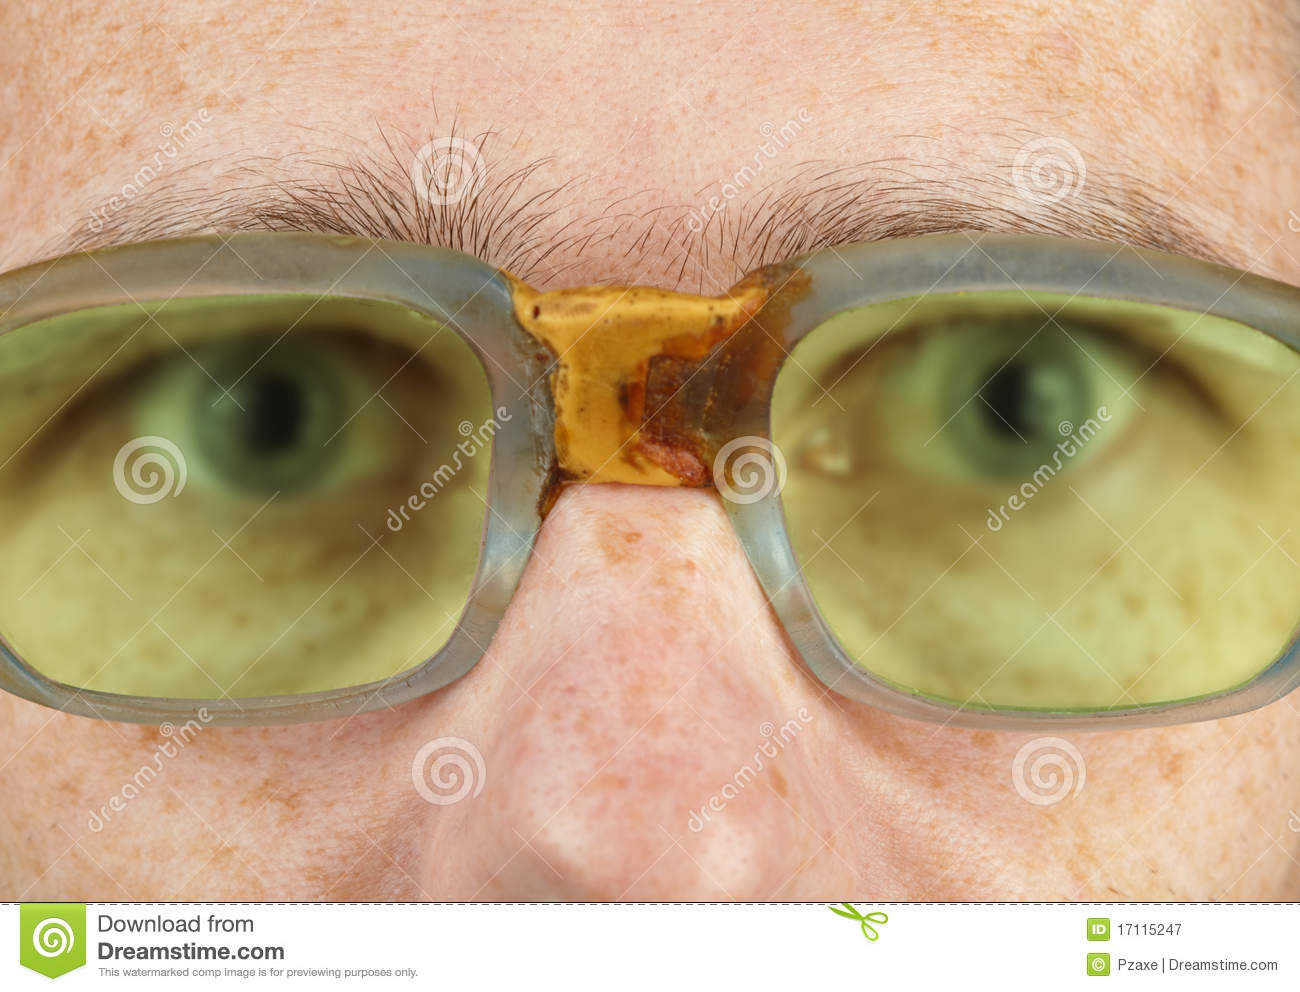 Person In Old Bad Spectacles With Poor Eyesight Stock ...